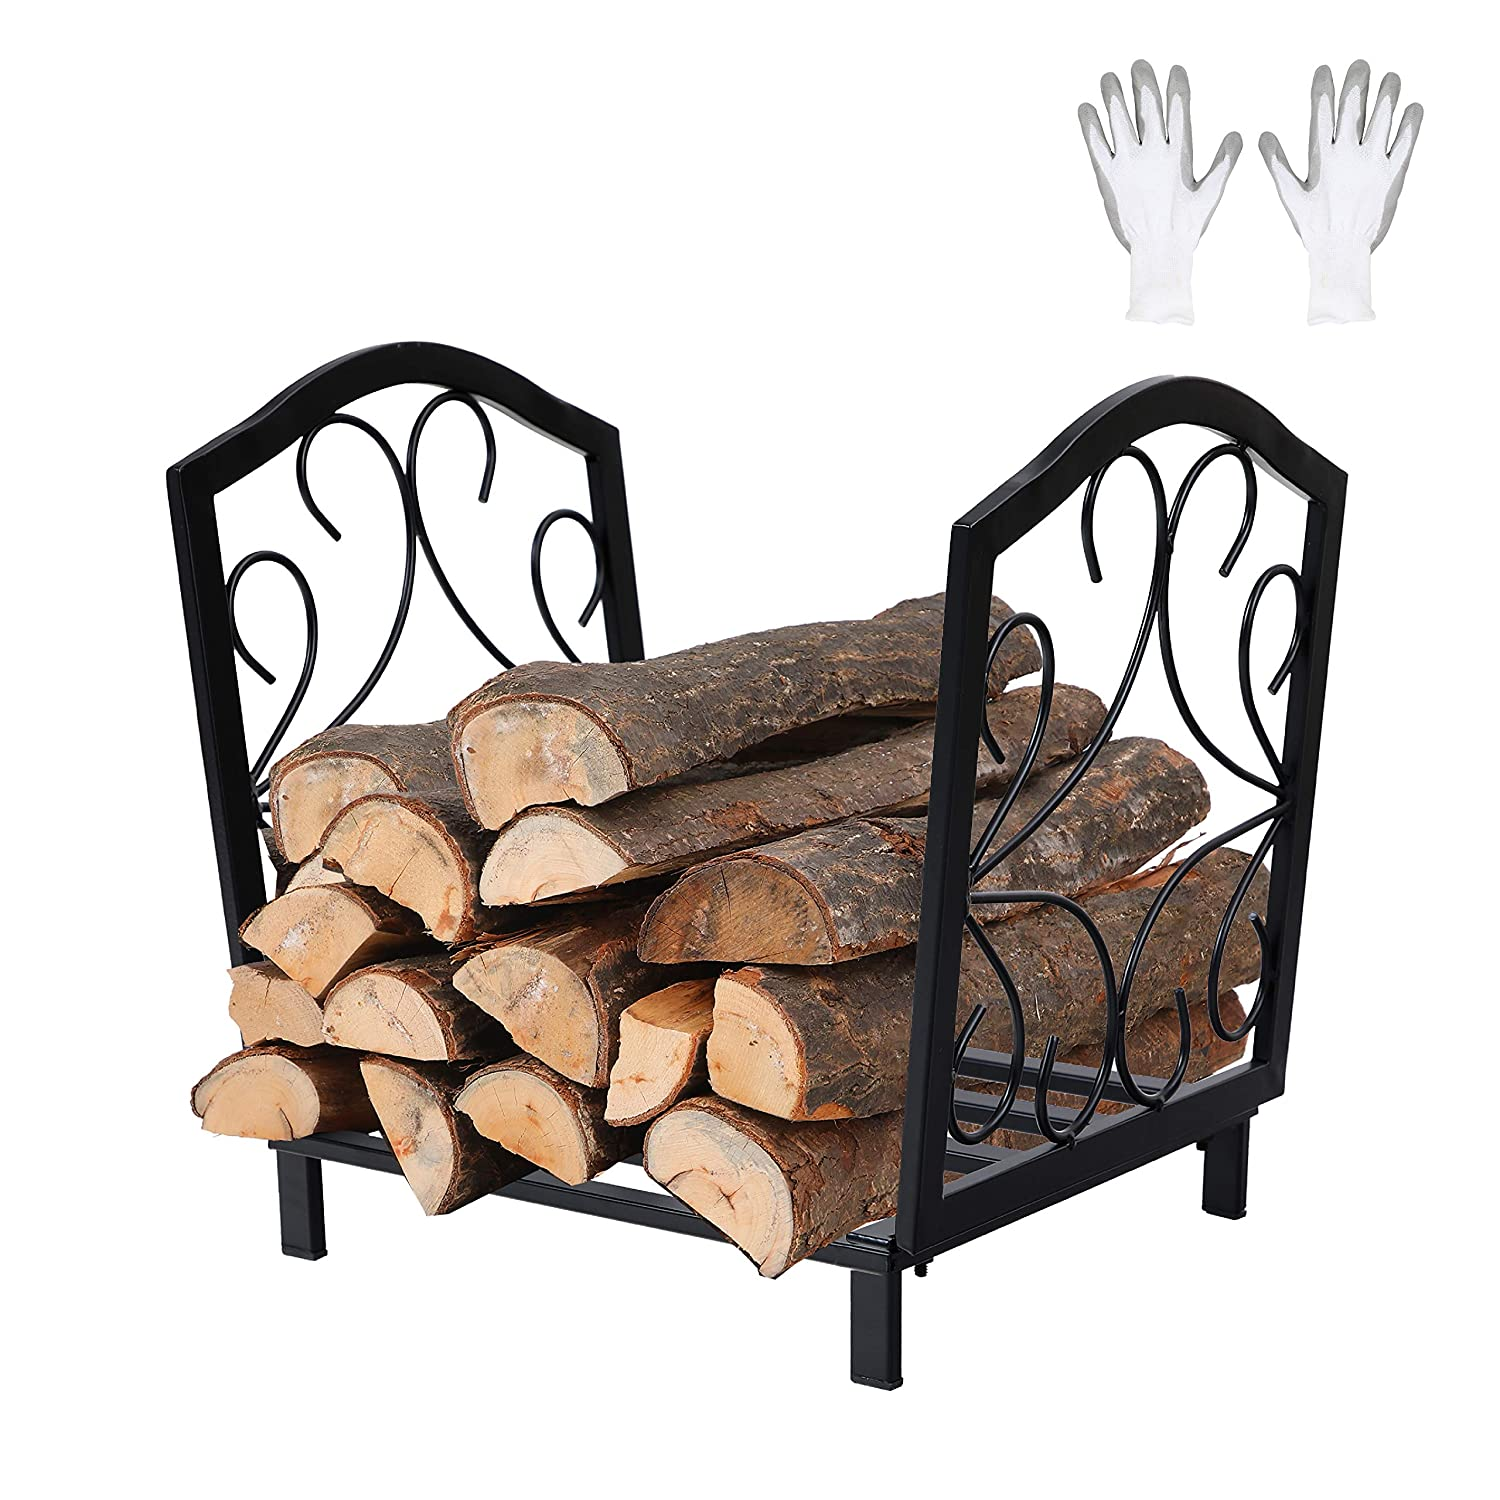 PHI VILLA 17 Inch Small Decorative Indoor Outdoor Firewood Racks Steel Wood Storage Log Rack Holder